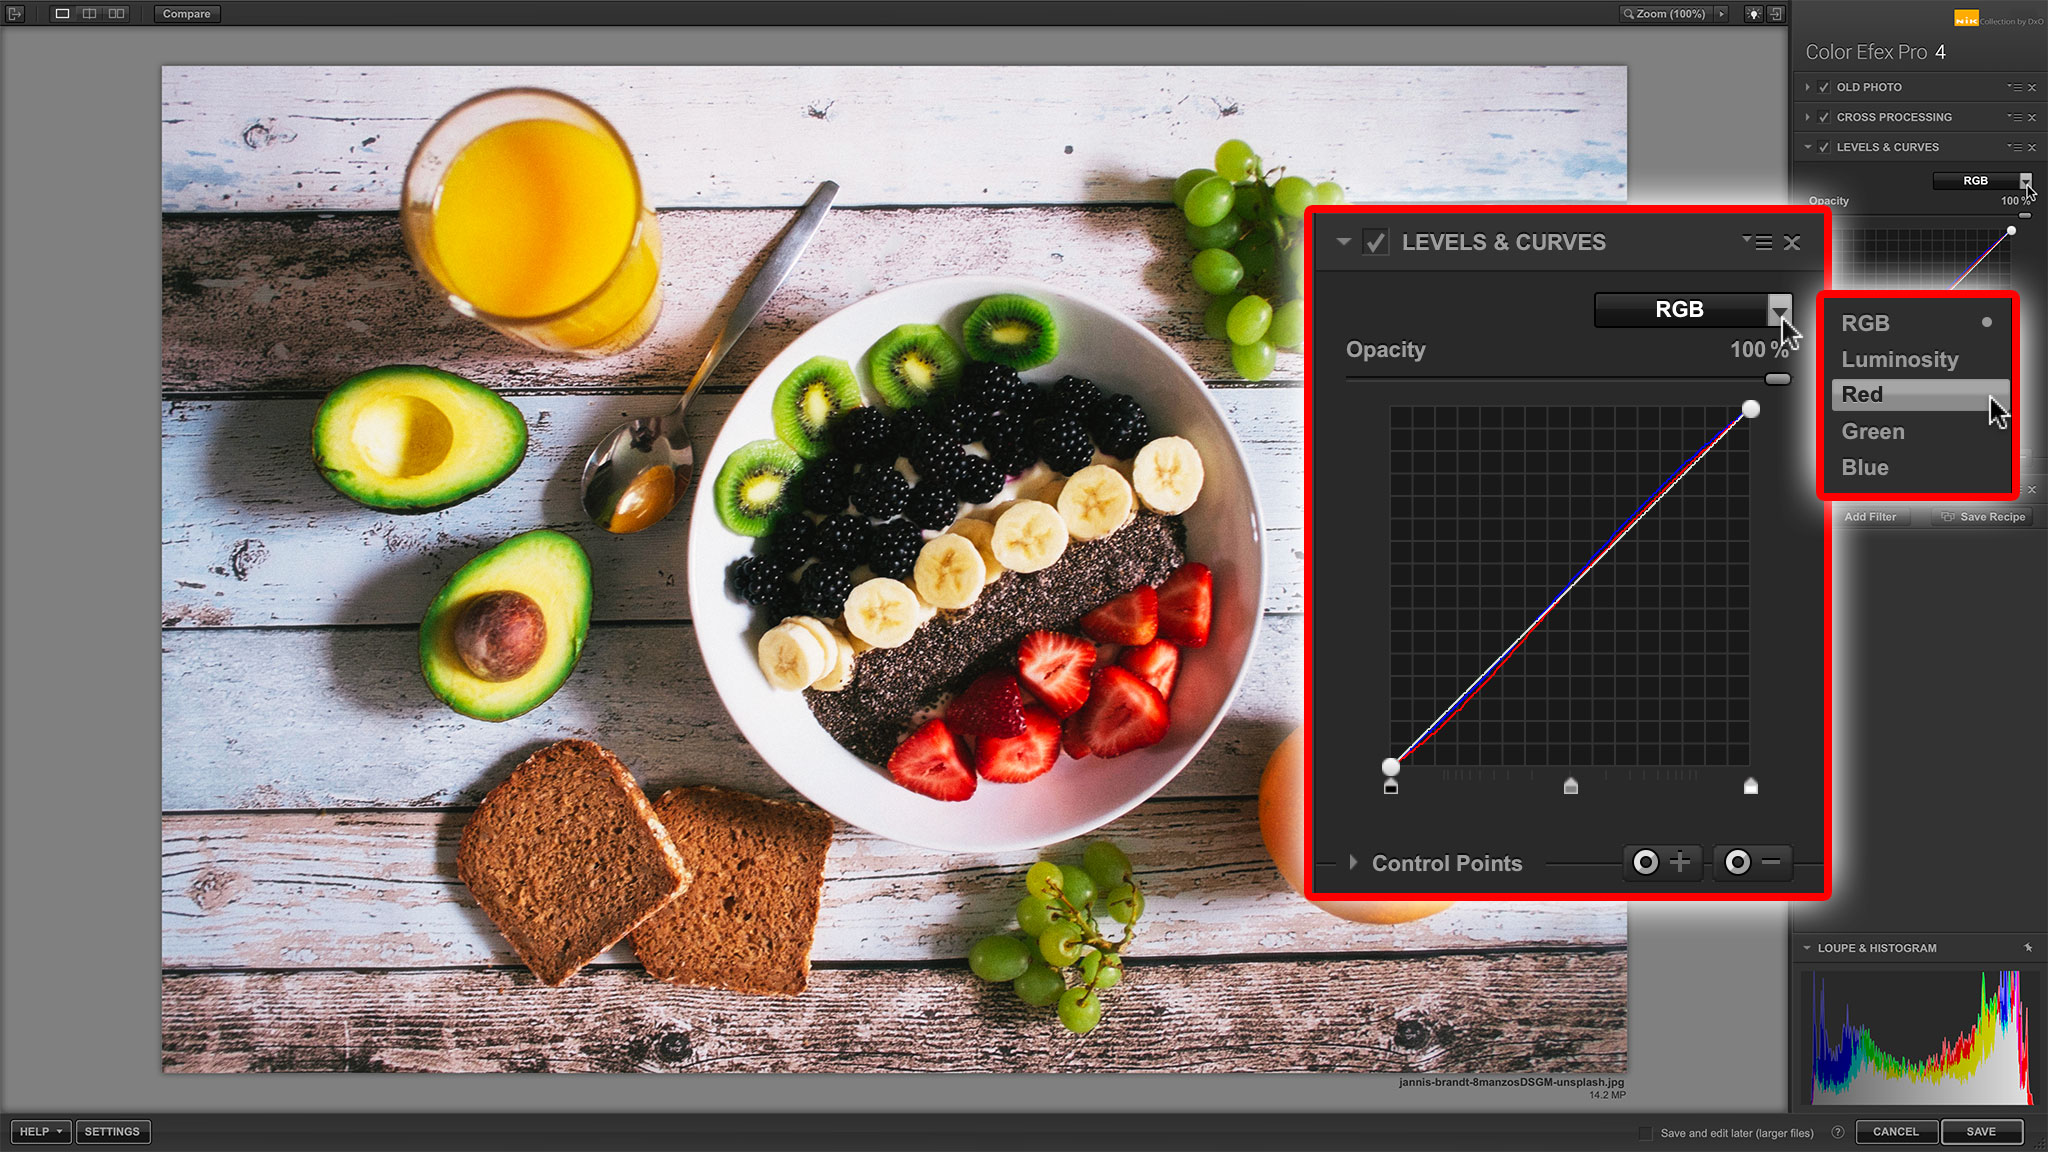 Color Efex Pro Recipes